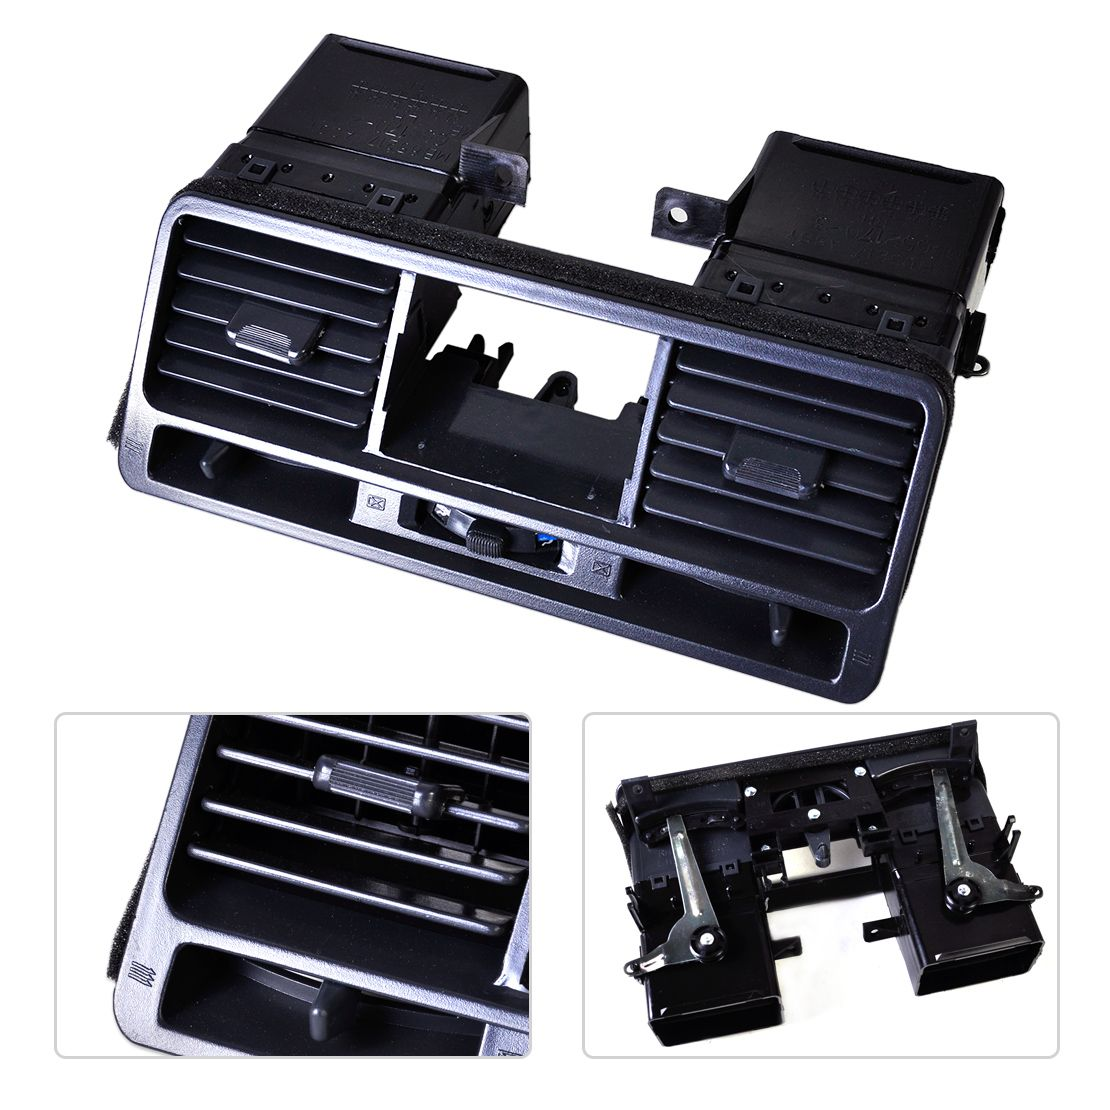 New Black Dashboard Air Vent Outlet Panel MR308038 MB775266 Fit for Mitsubishi Pajero Shogun Montero V31 V32 V33 1998 1999